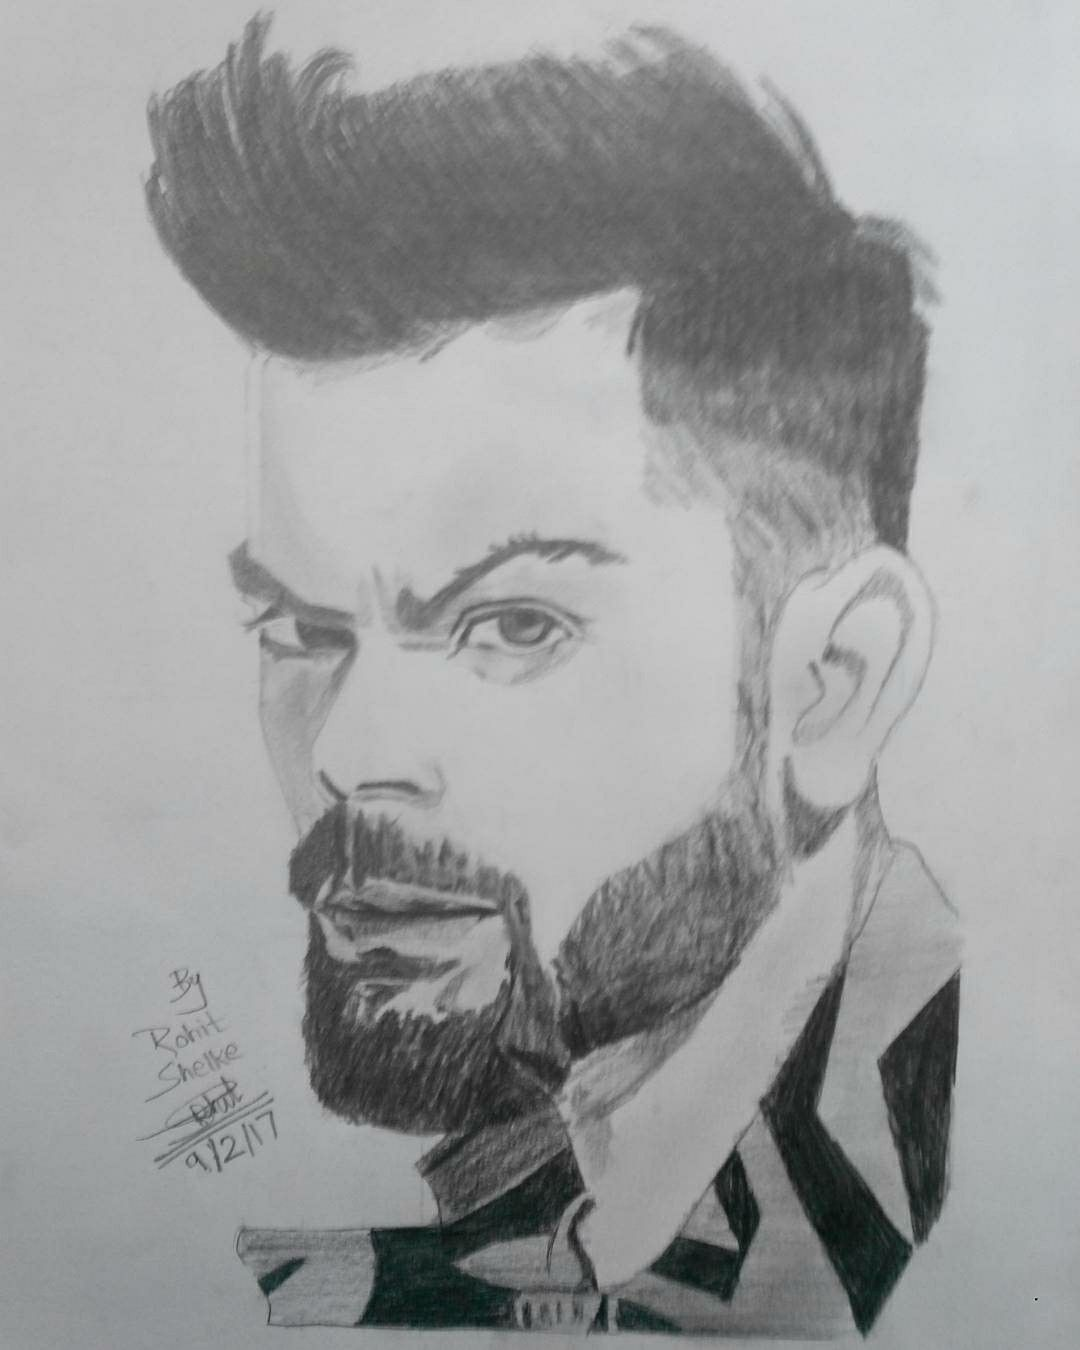 Virat Kohli Pencil Sketch Images Download